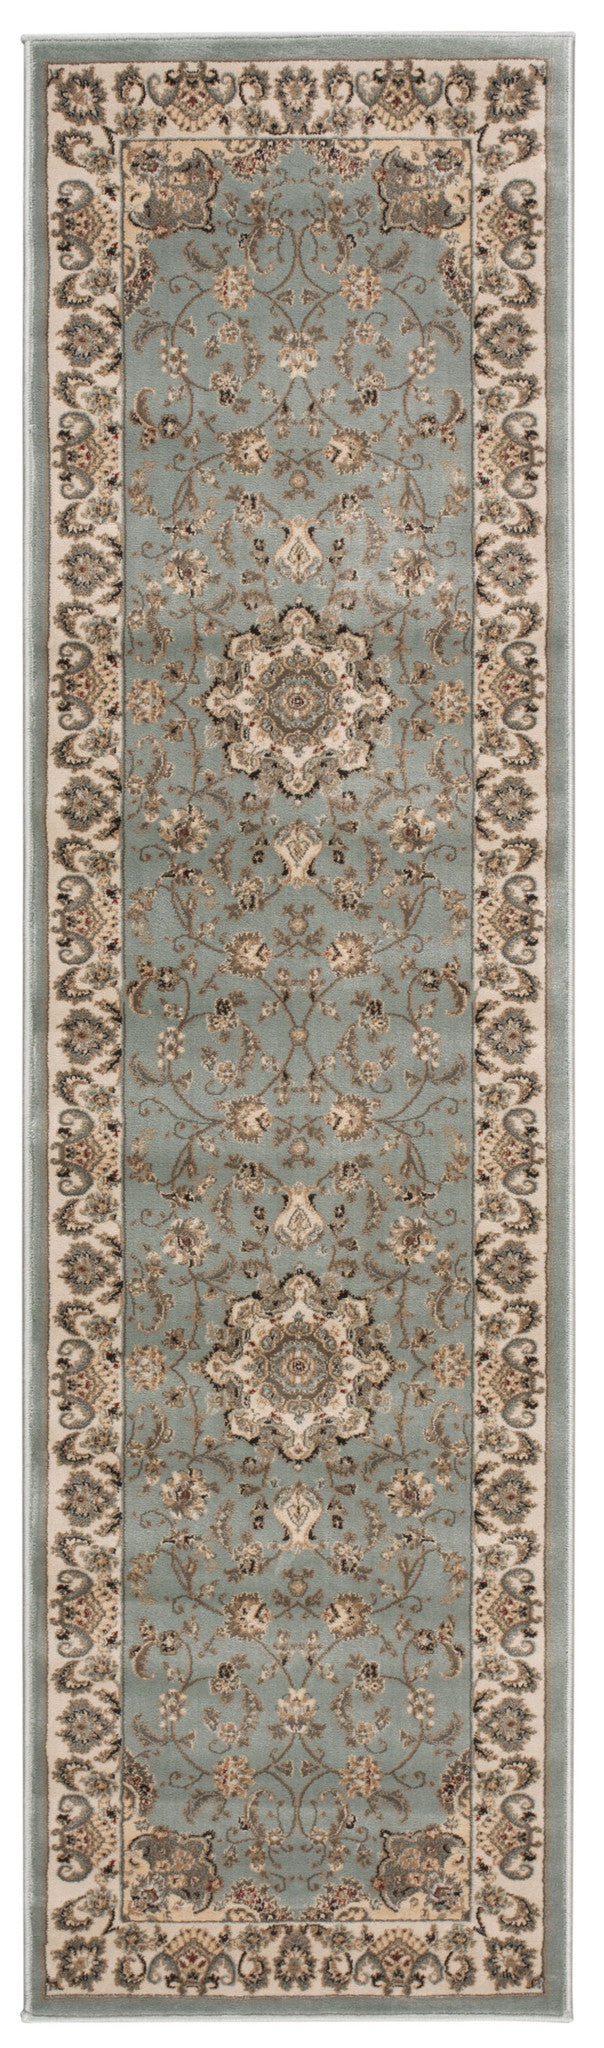 Nourison Ararat Light Blue Area Rug ARA02 LTB